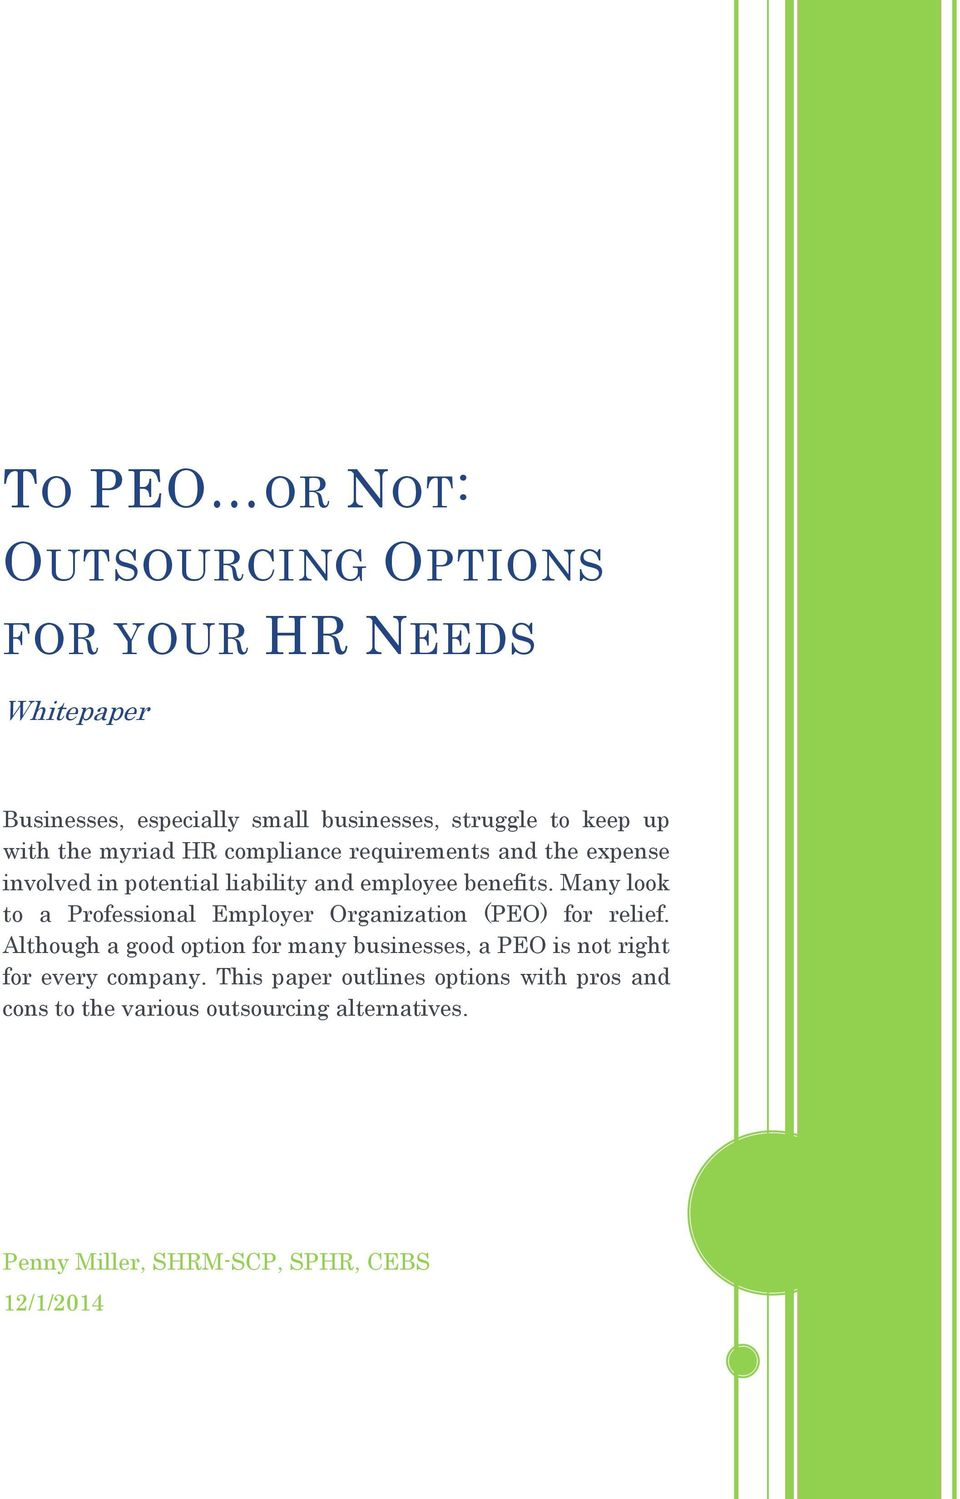 Many look to a Professional Employer Organization (PEO) for relief.